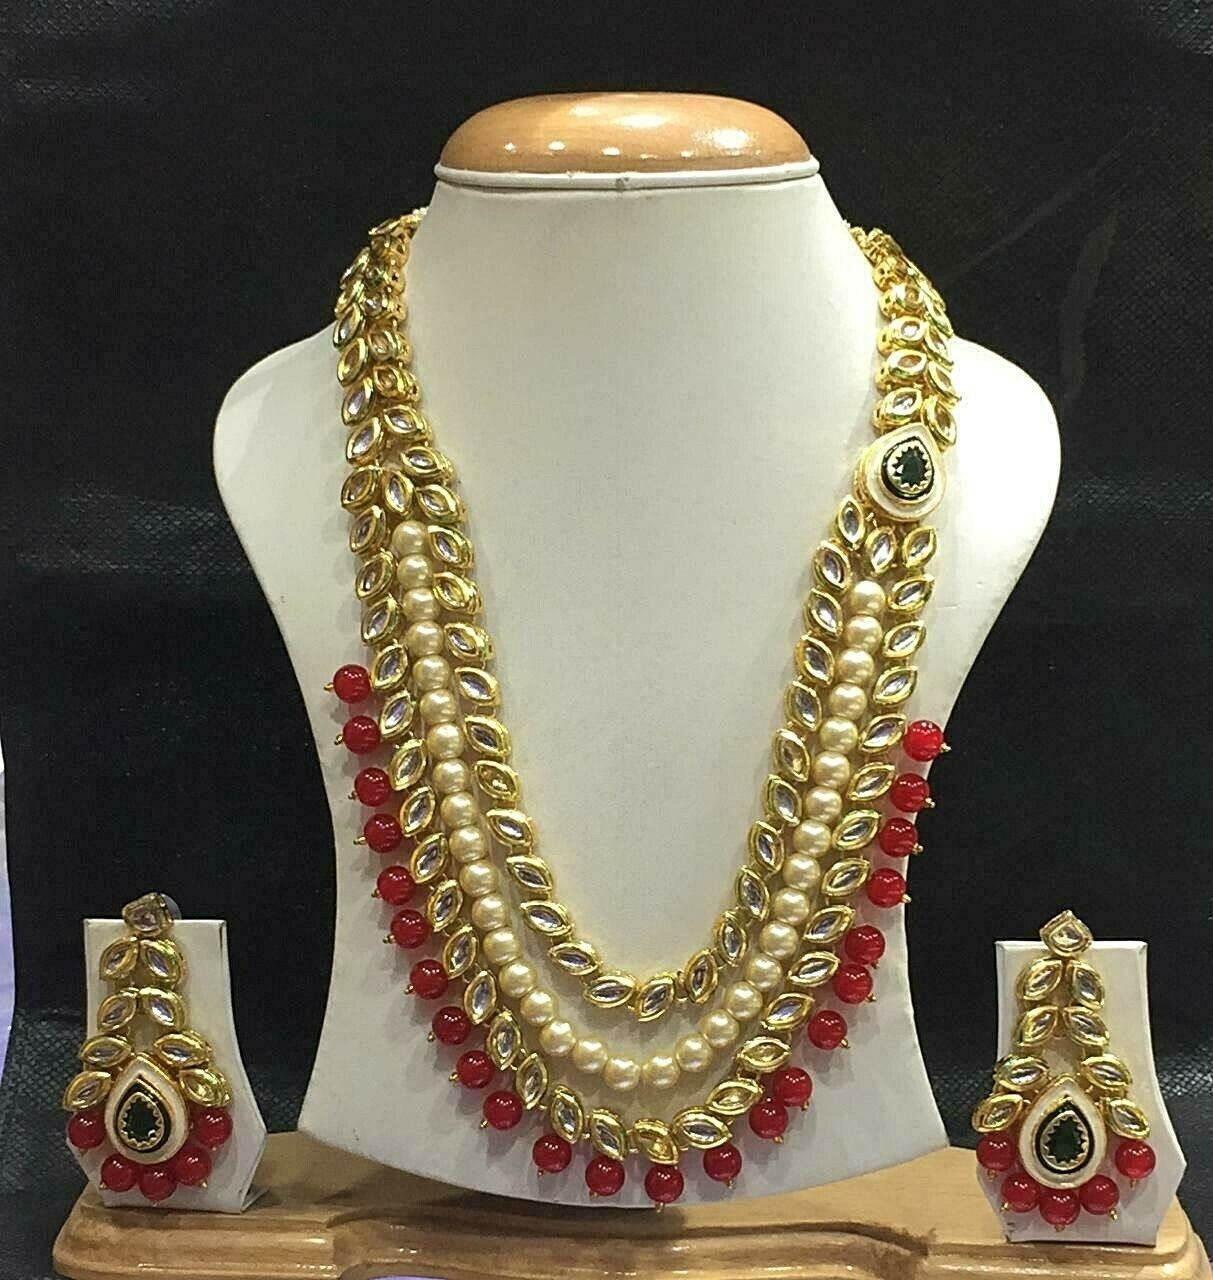 Ethnic Indian Bollywood Long Gold Tone Kundan Red Necklace Earrings Jewelry